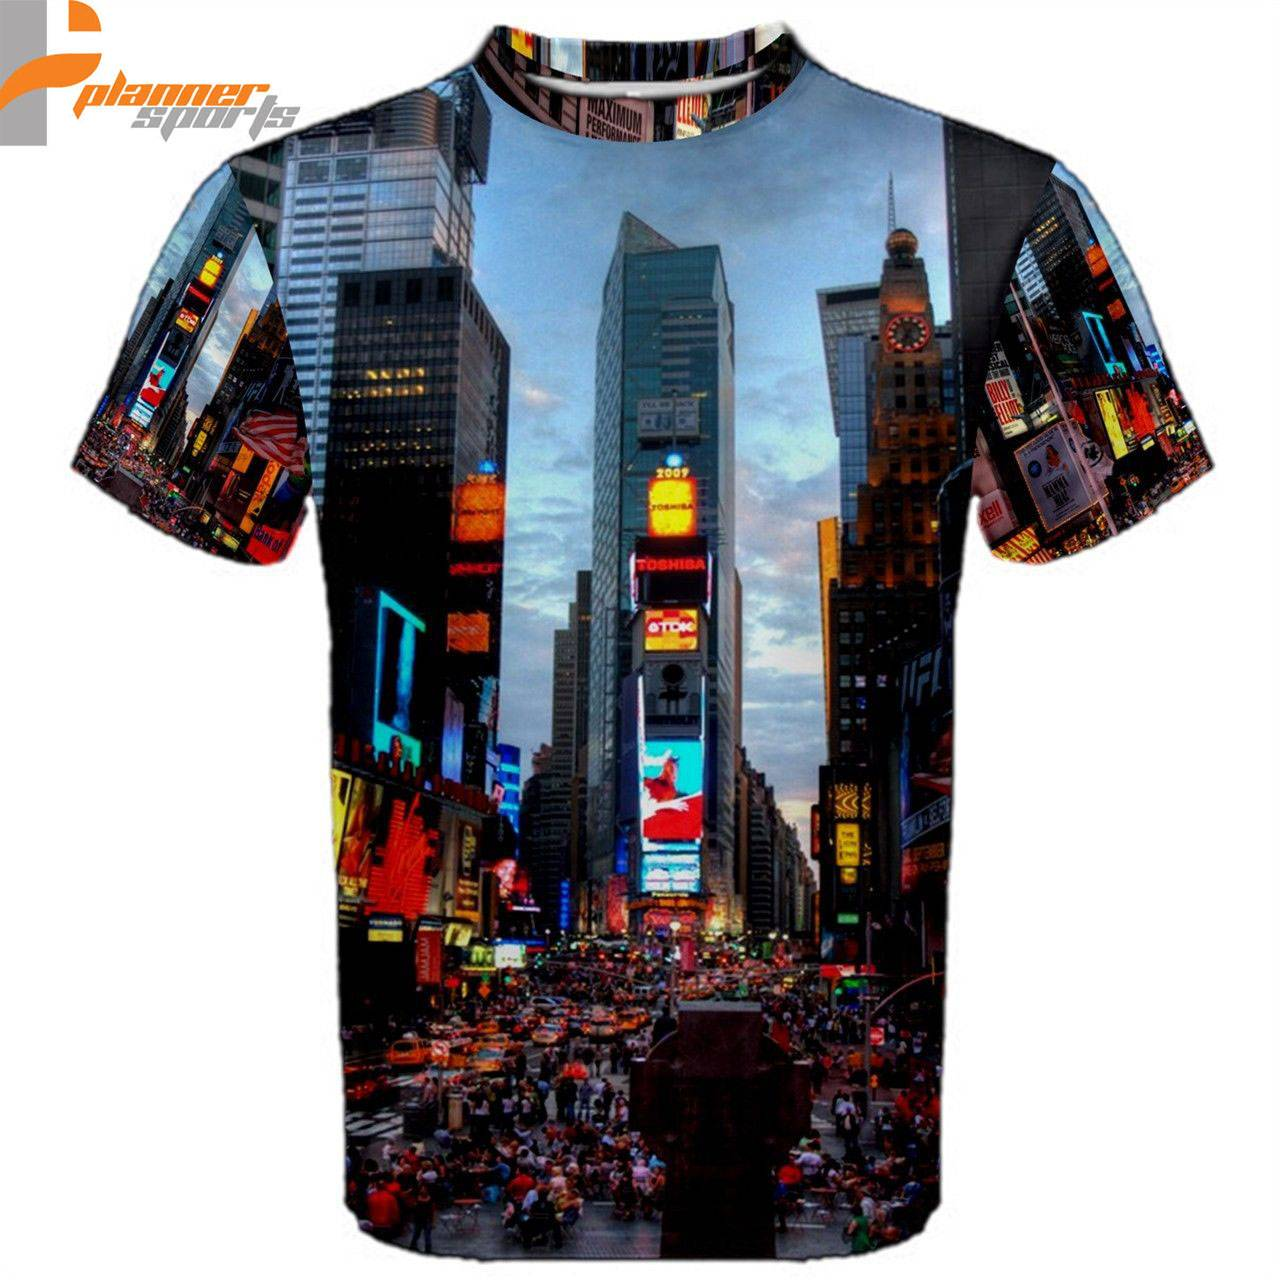 New York Times Square Sublimated Sublimation T-Shirt S,M,L,XL,2XL,3XL